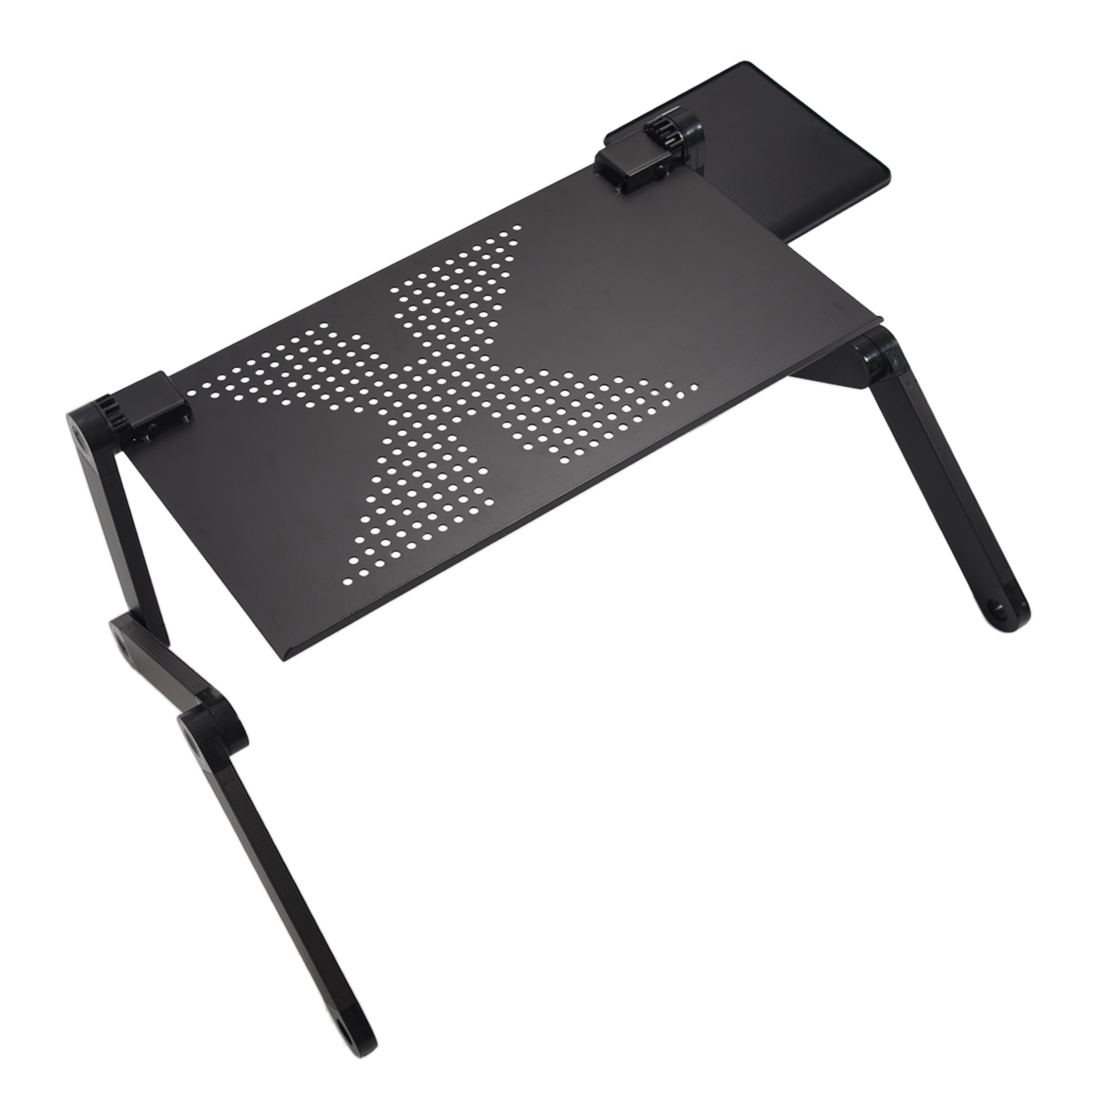 Hot sale Portable Foldable Adjustable Laptop Desk Computer Table Stand Tray For Sofa Bed Black